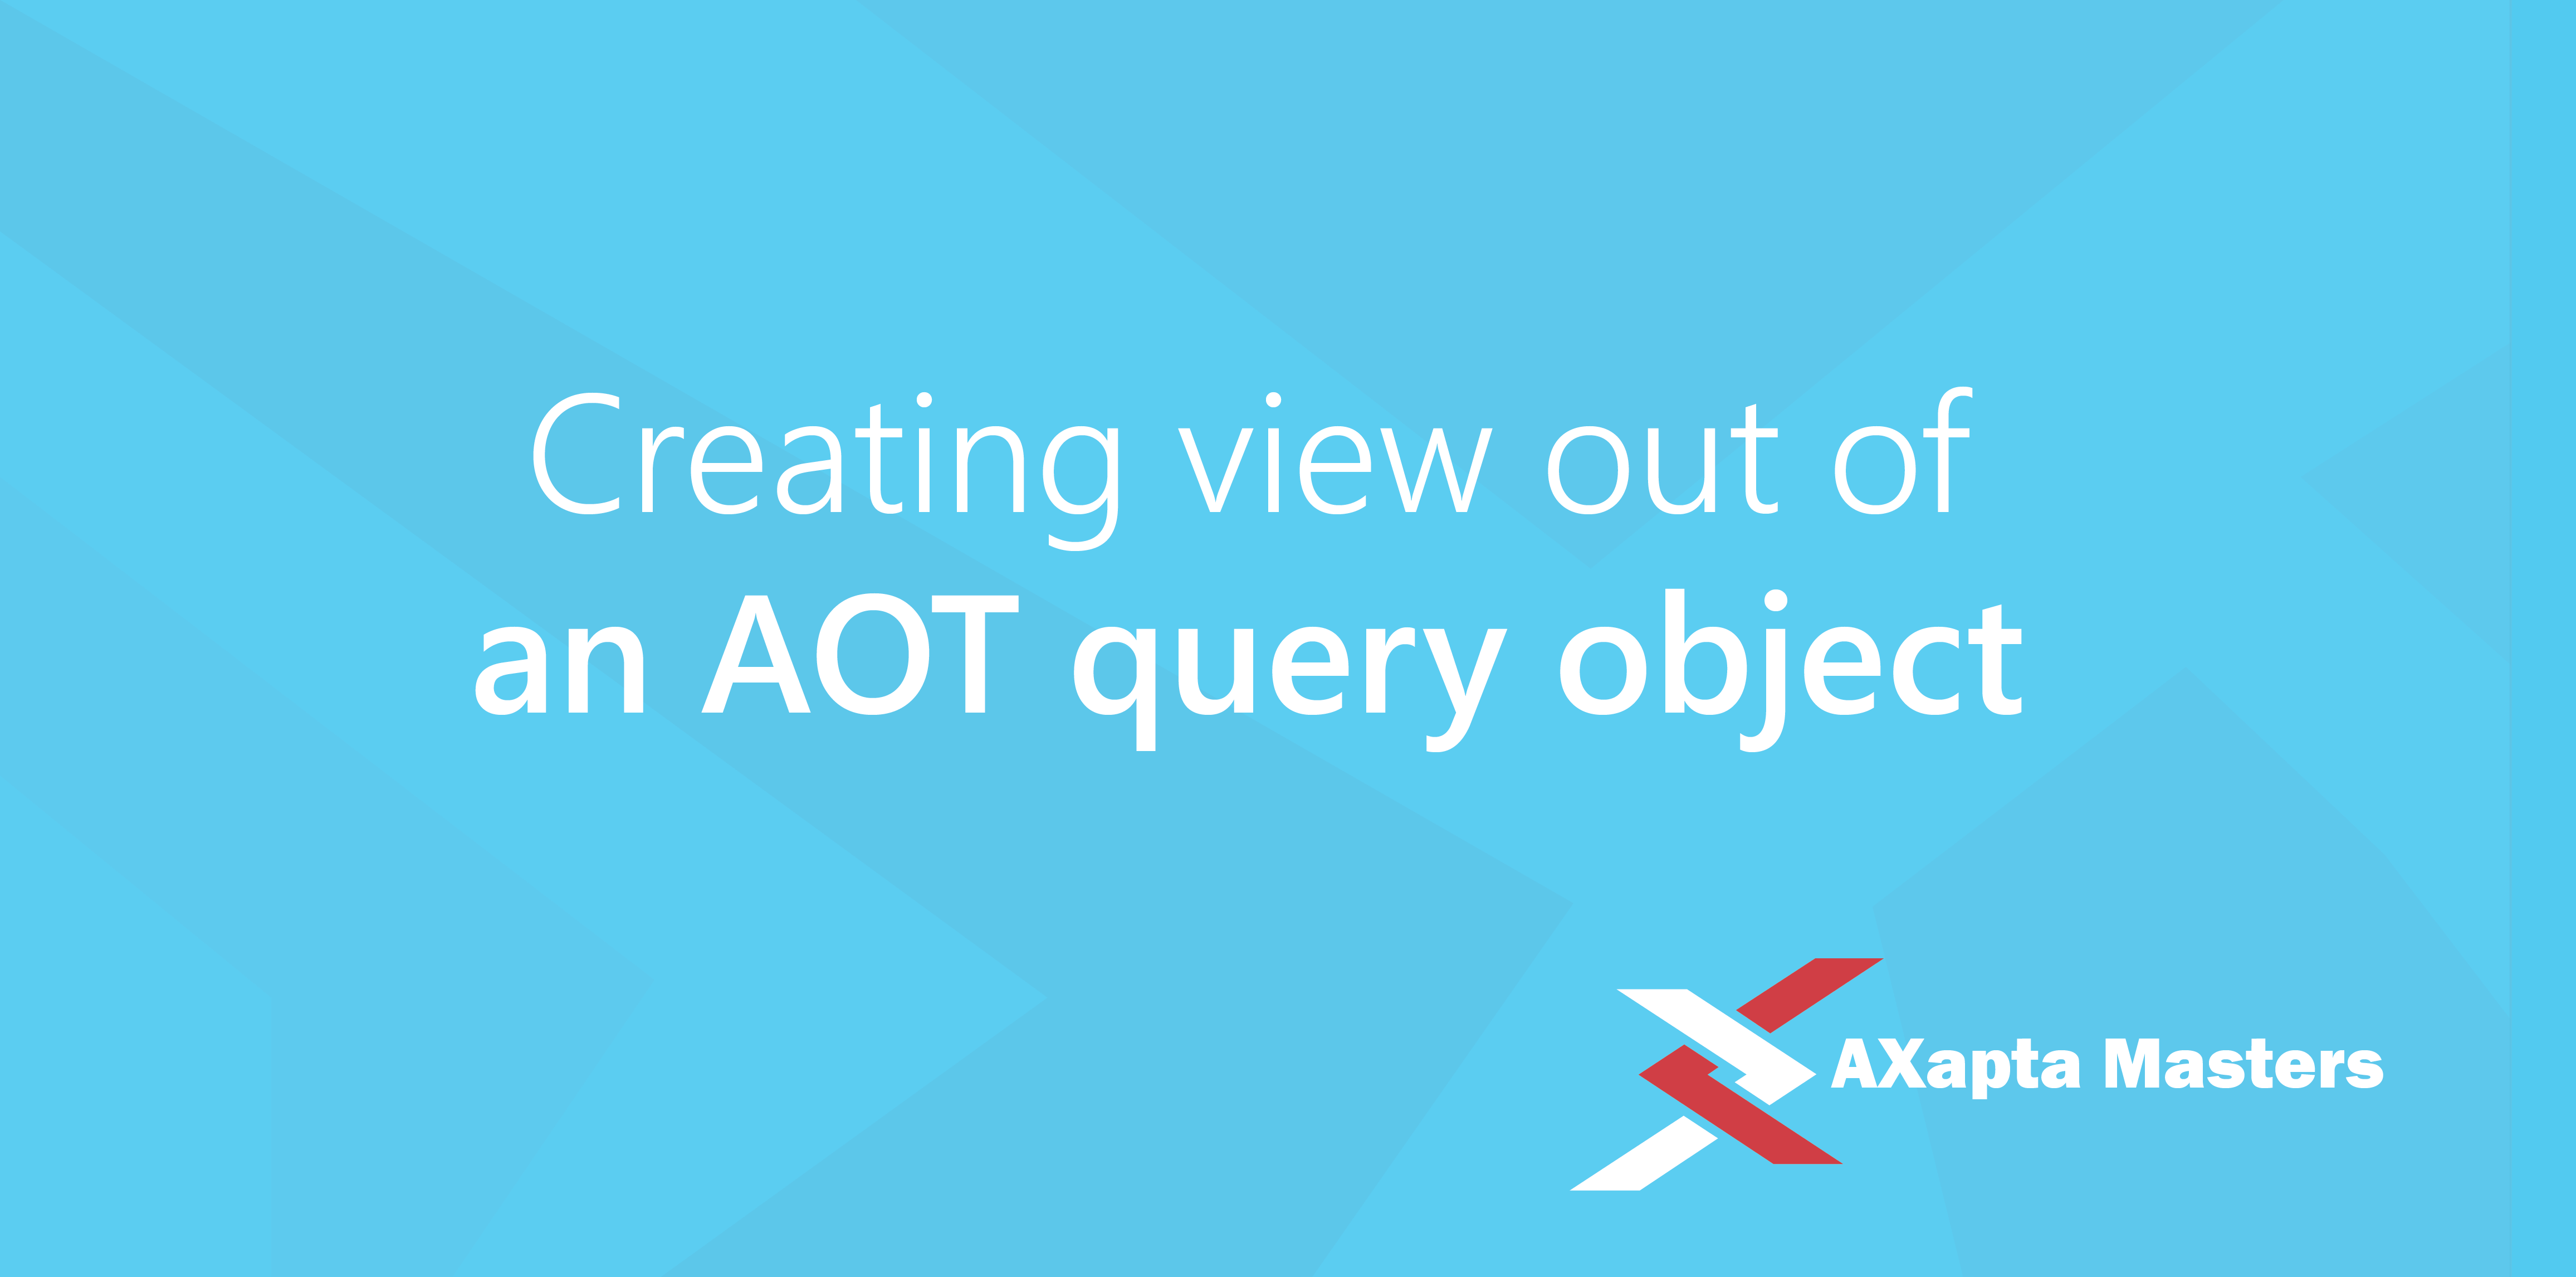 Creating view out of an AOT query object